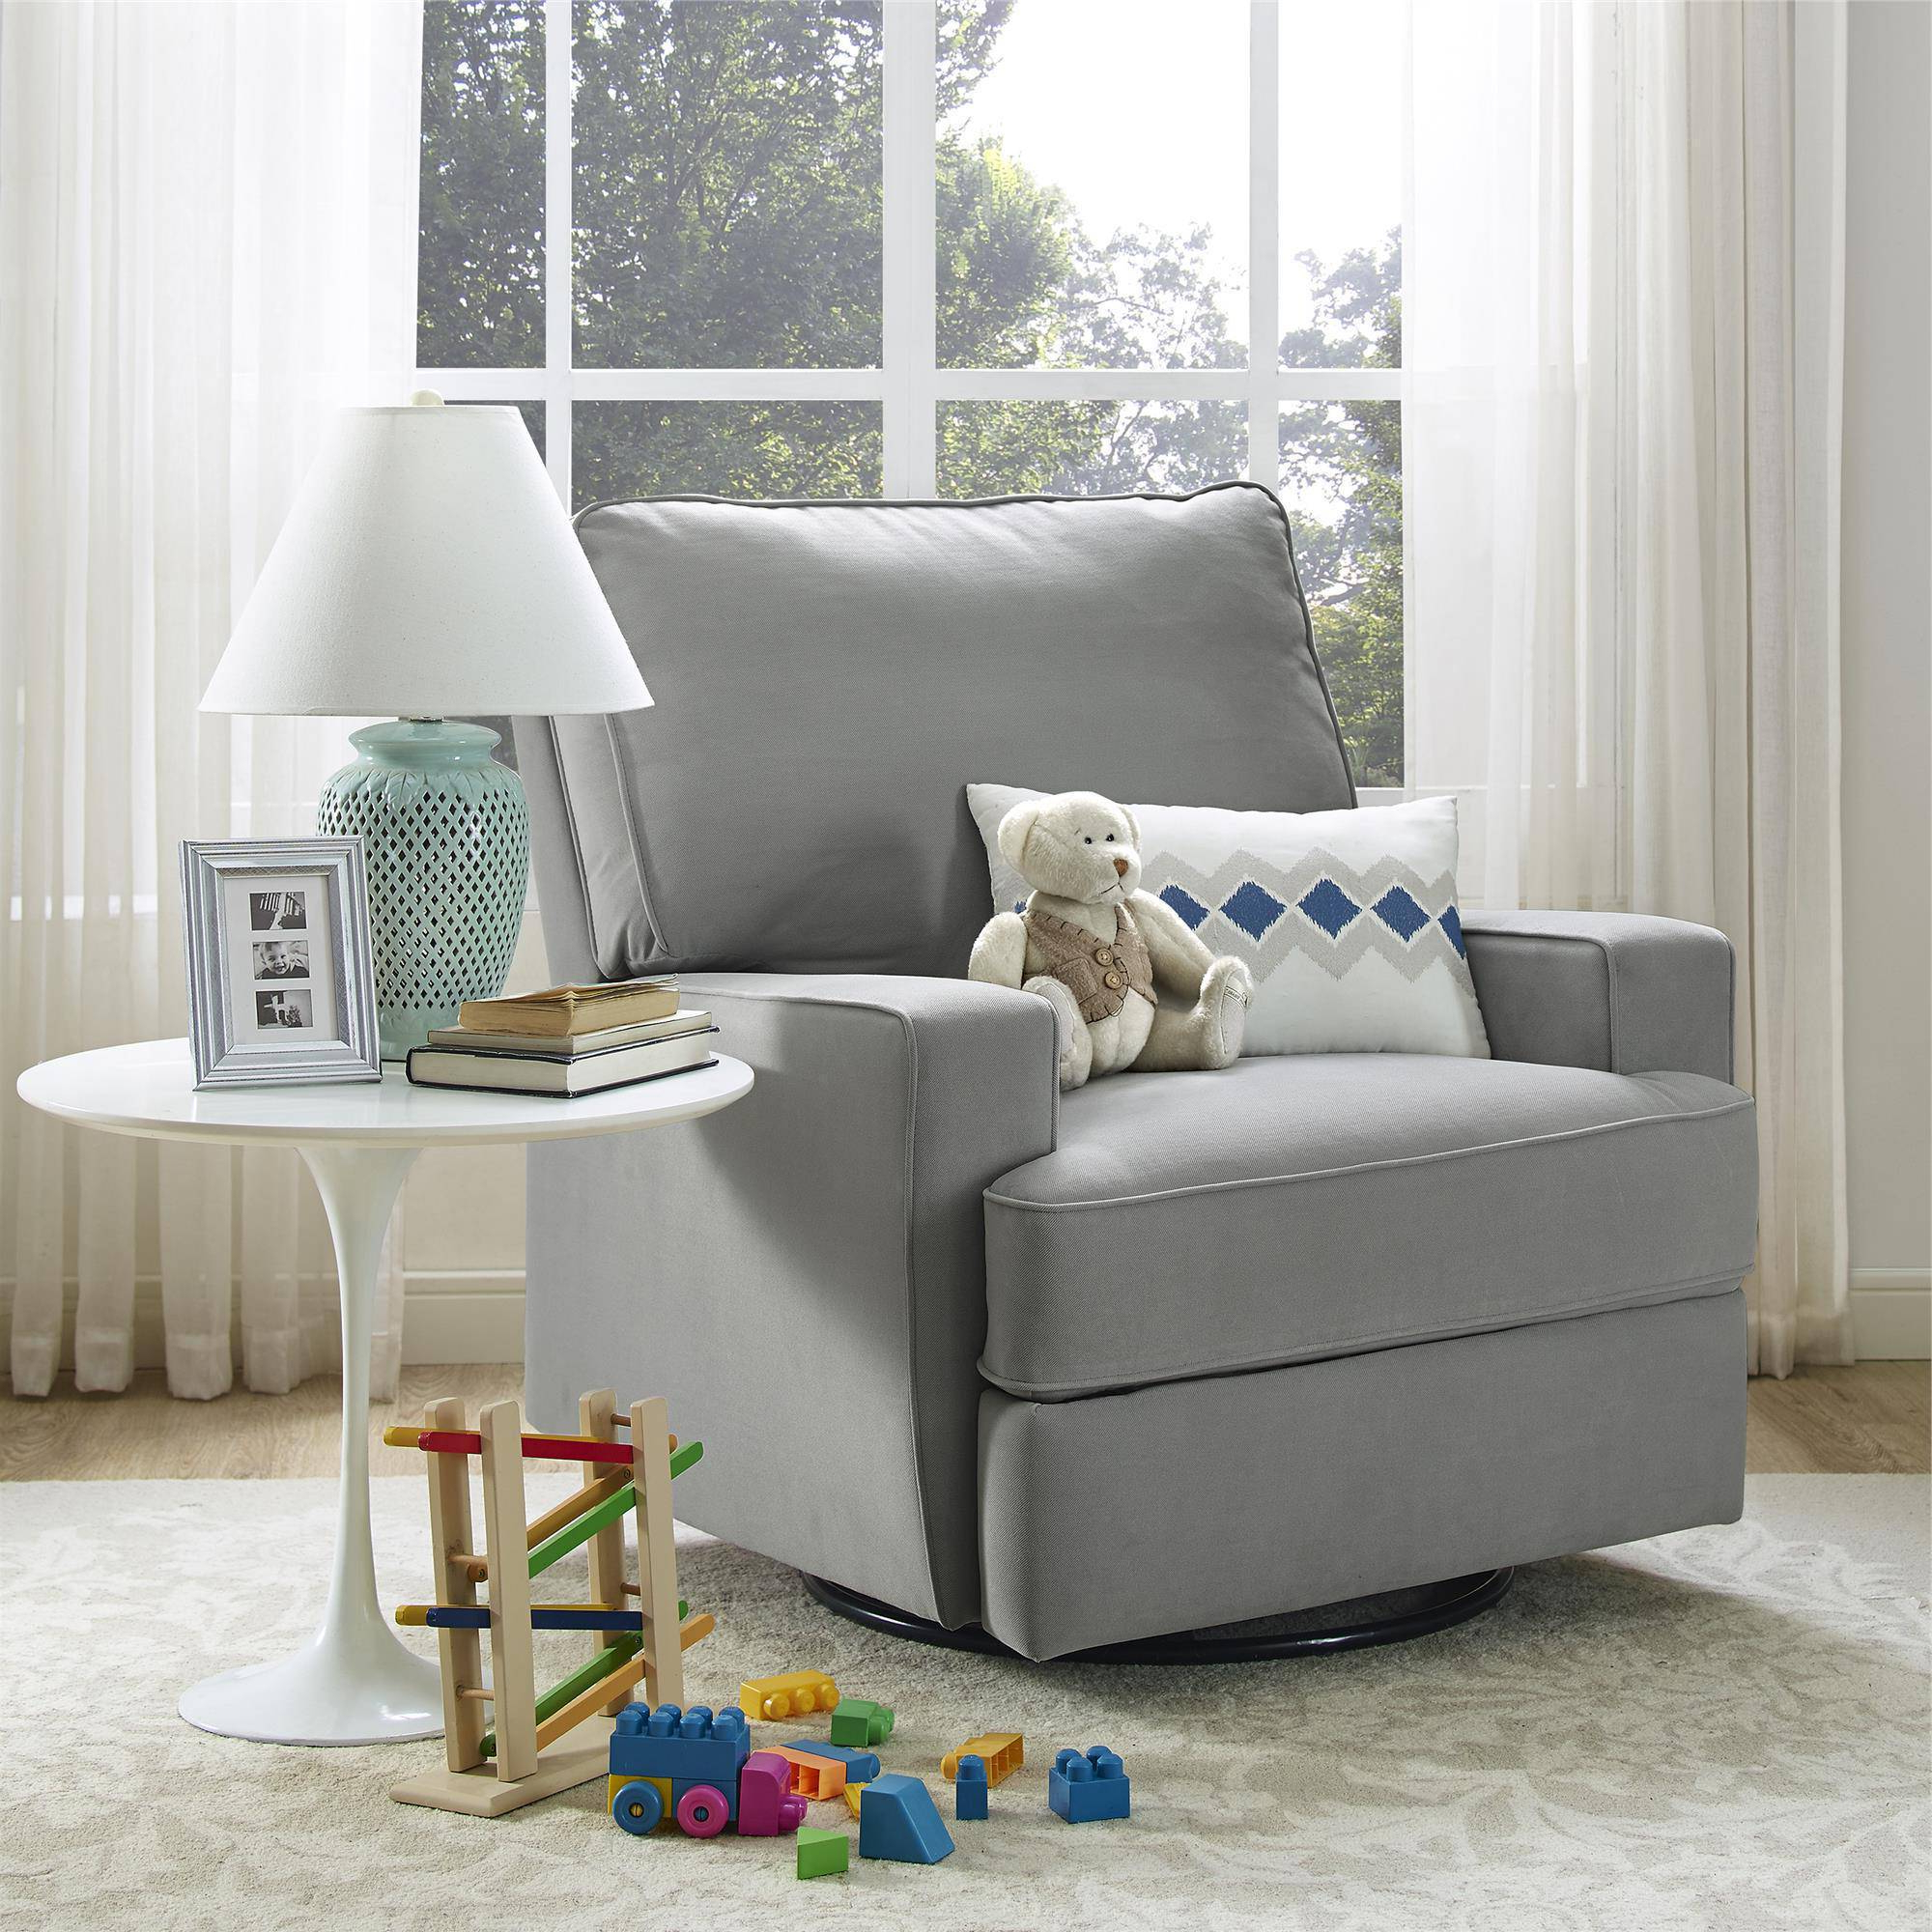 Furniture: Magnificent Walmart Glider Rocker For Fabulous Home For Recent Abbey Swivel Glider Recliners (View 14 of 20)